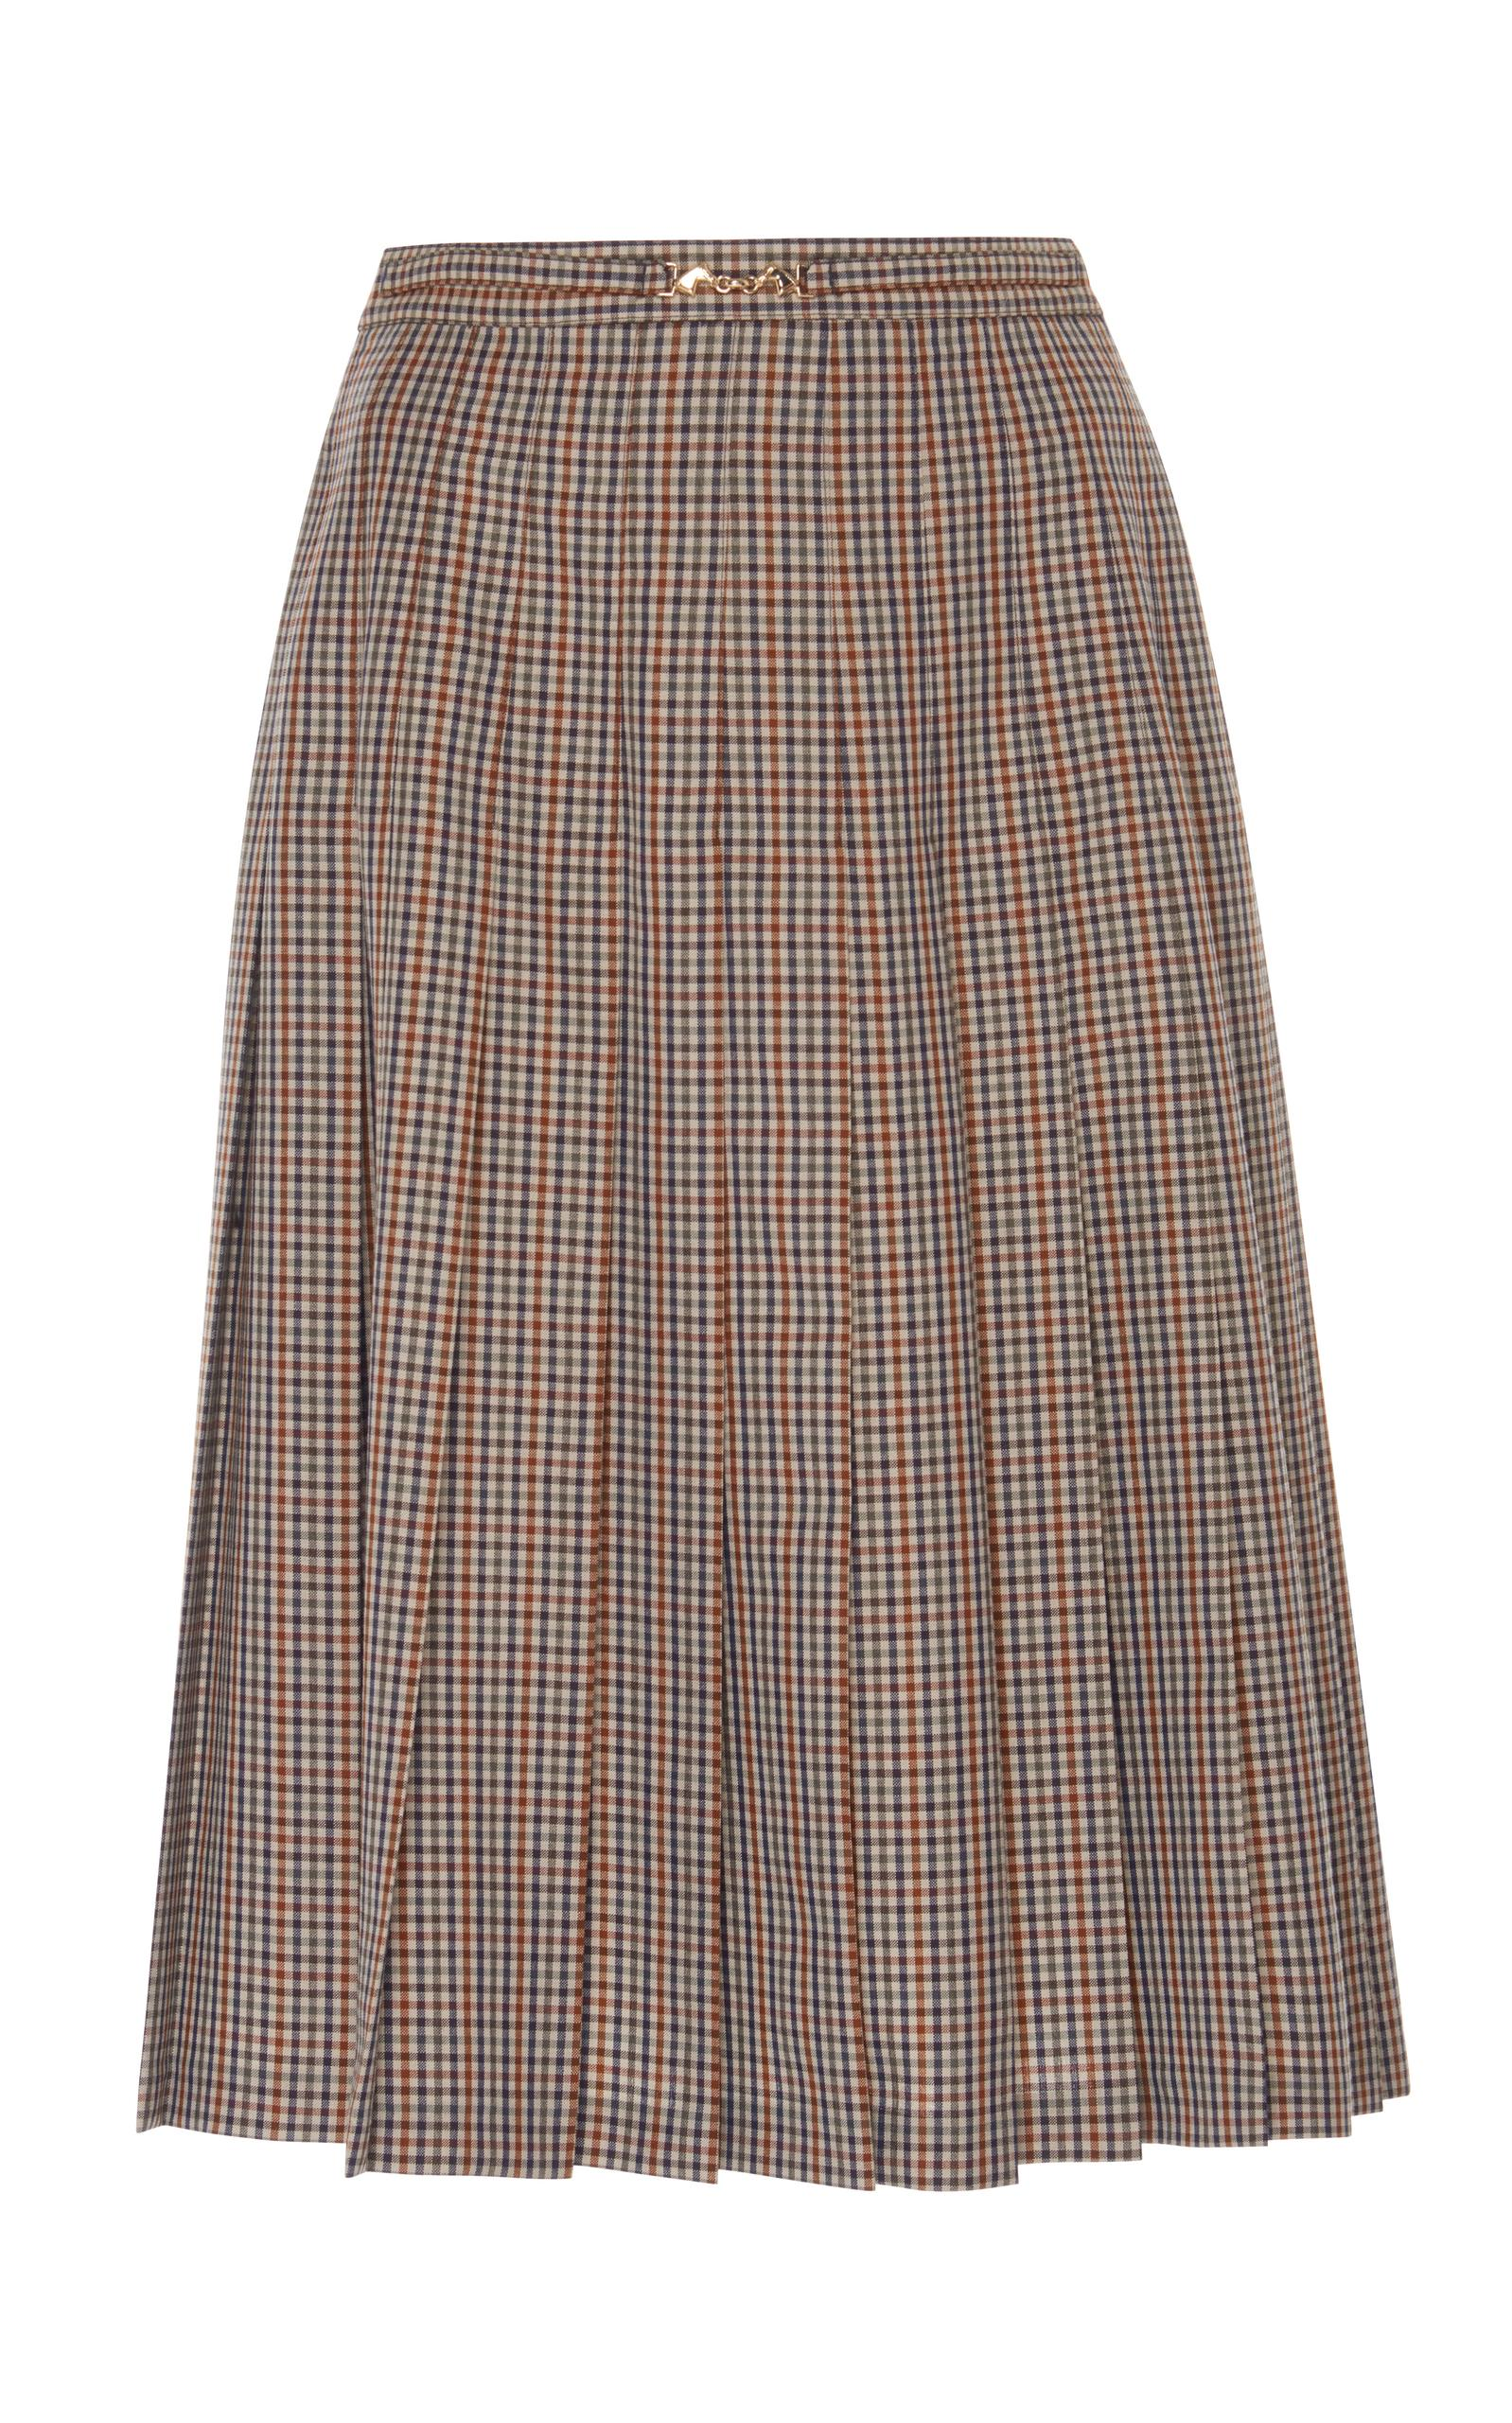 Maison Margiela Micro Check Pleated Skirt In Plaid